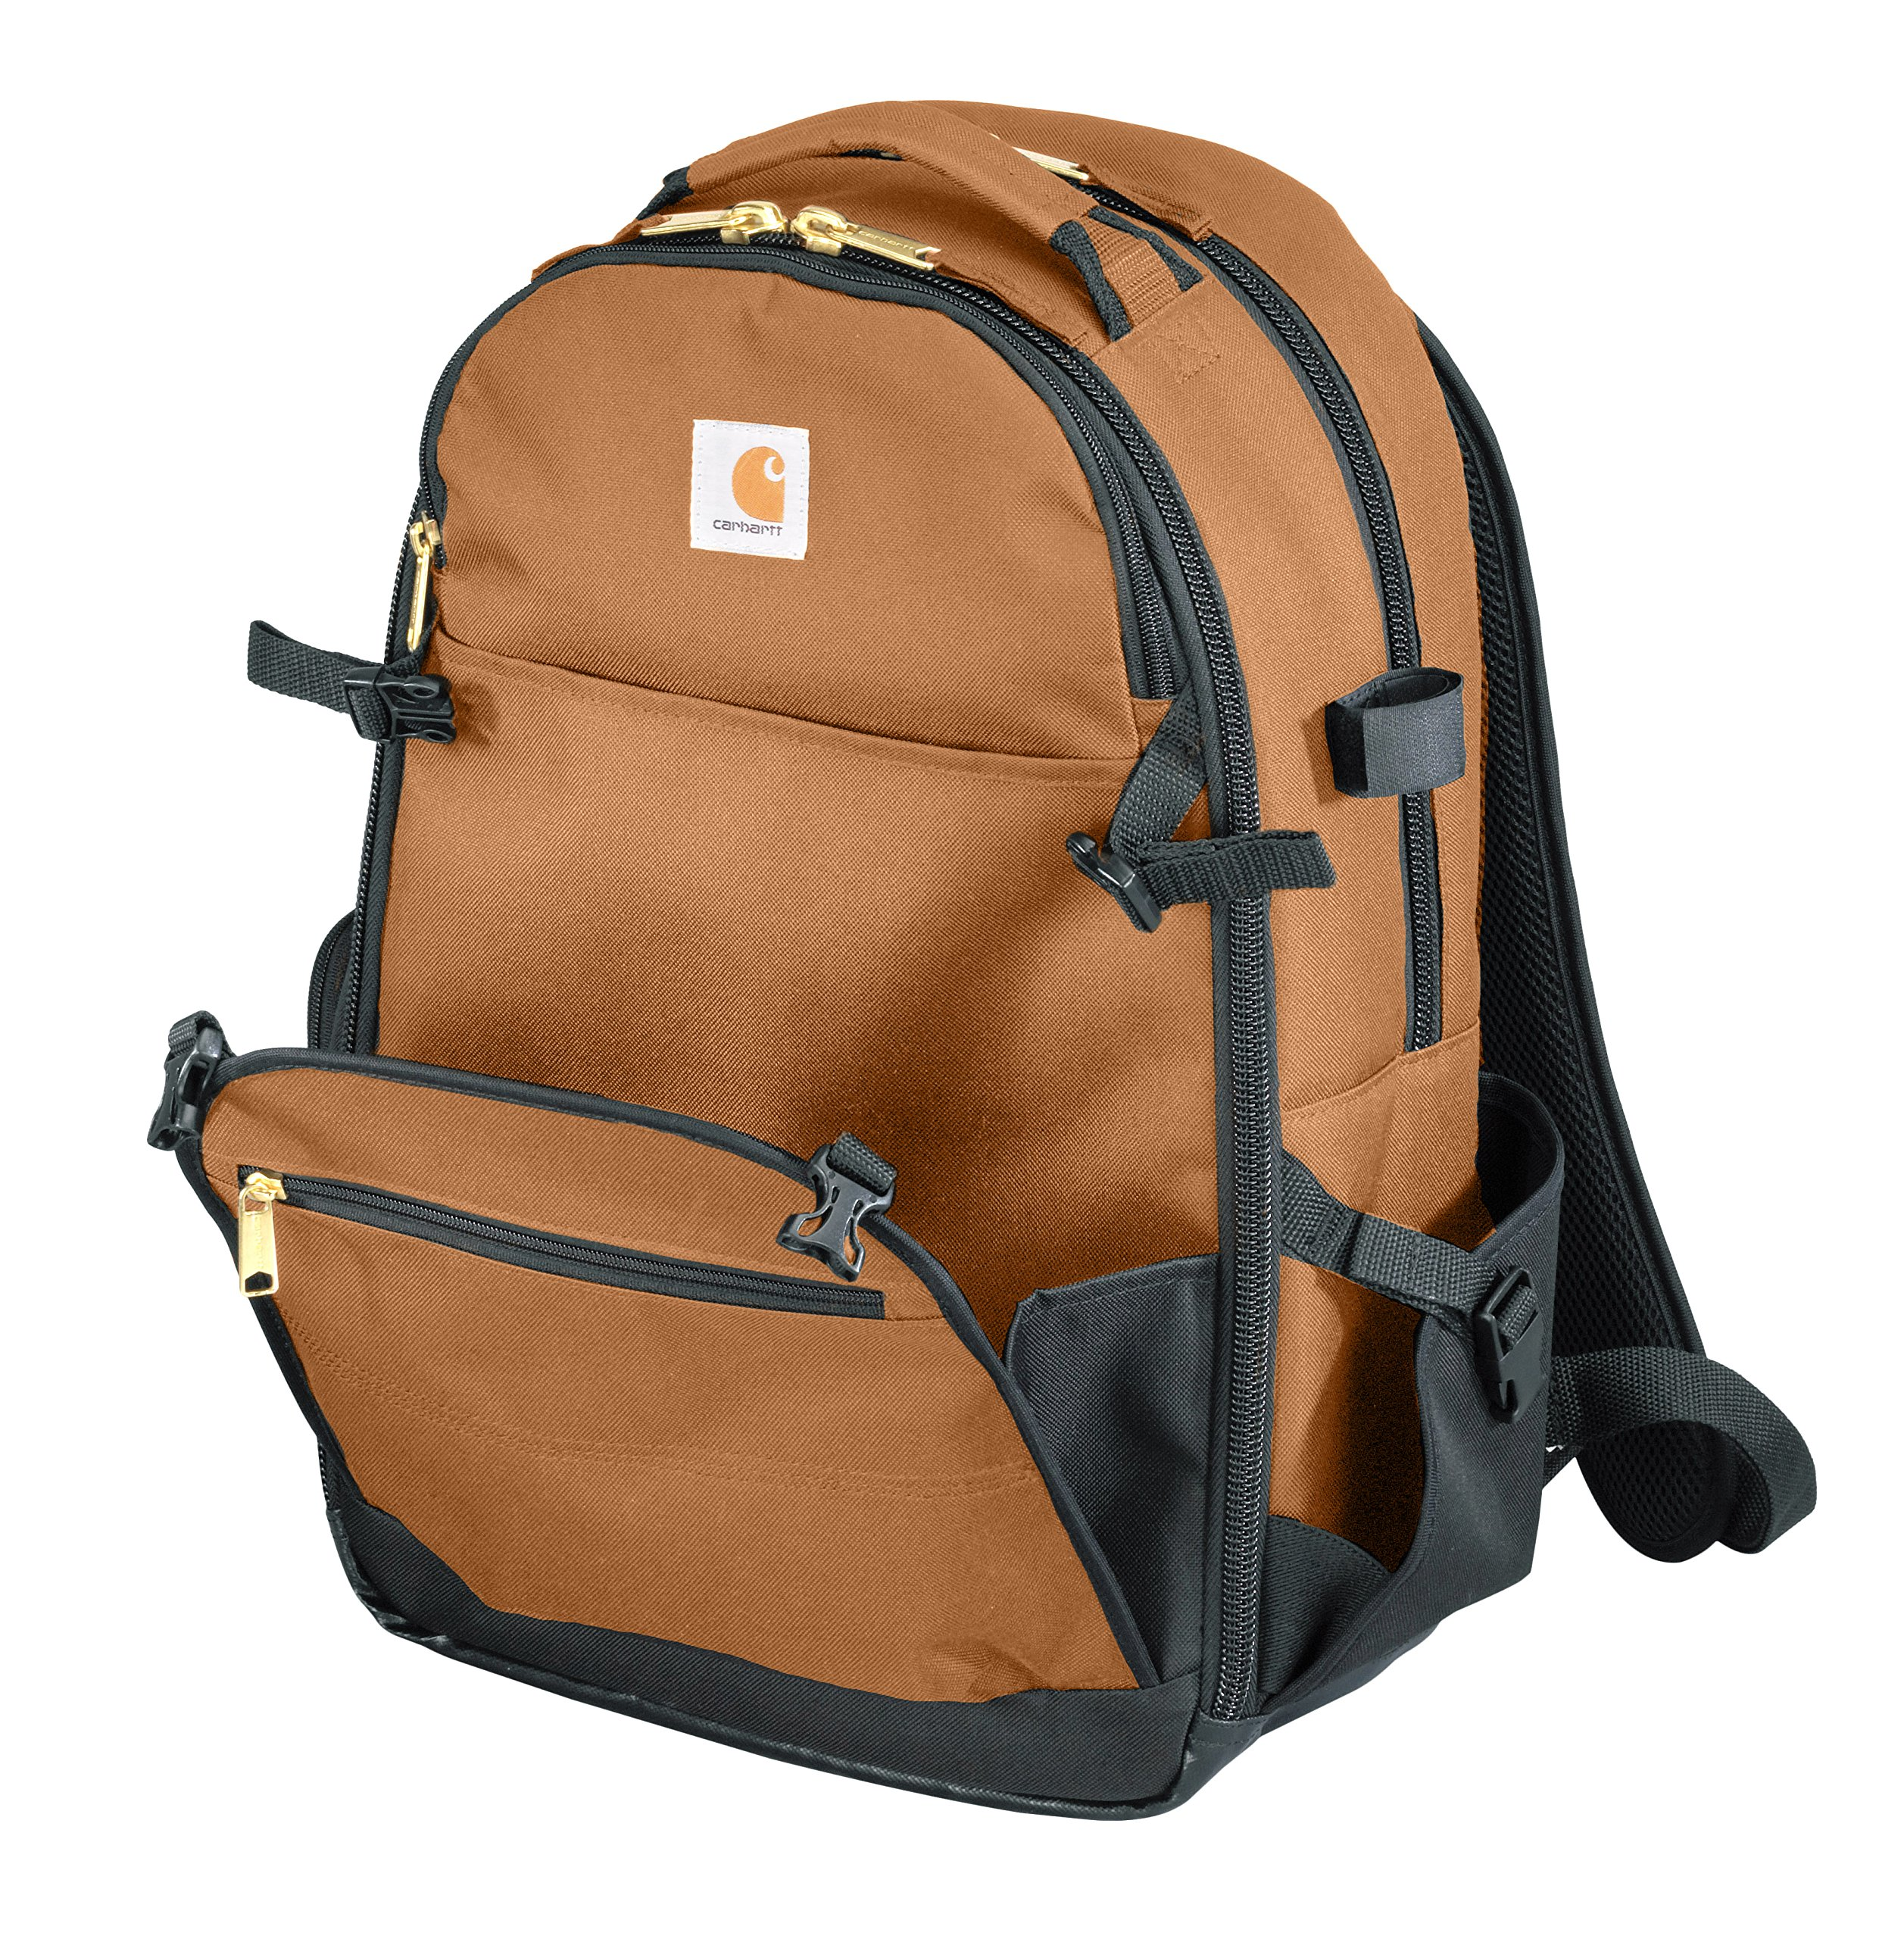 0cdb70a090 Details about Carhartt Legacy Expandable-Front Tool Backpack, Carhartt Brown